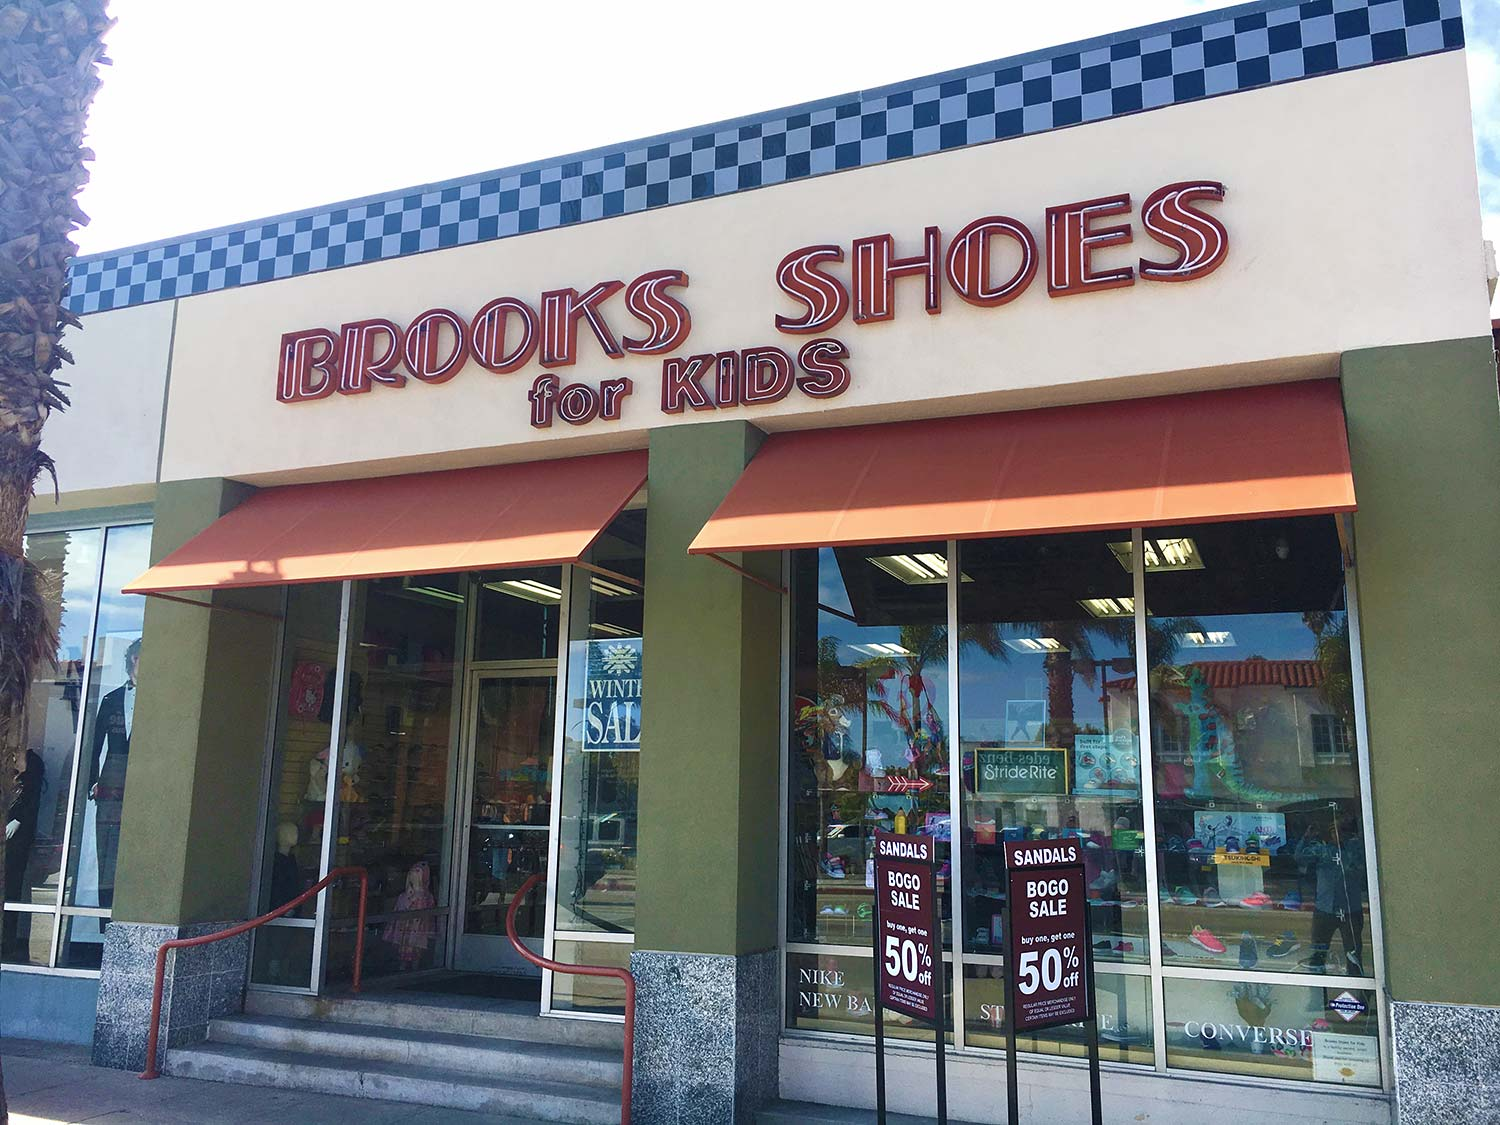 Brooks-Shoes-For-Kids-Location-pic.jpg